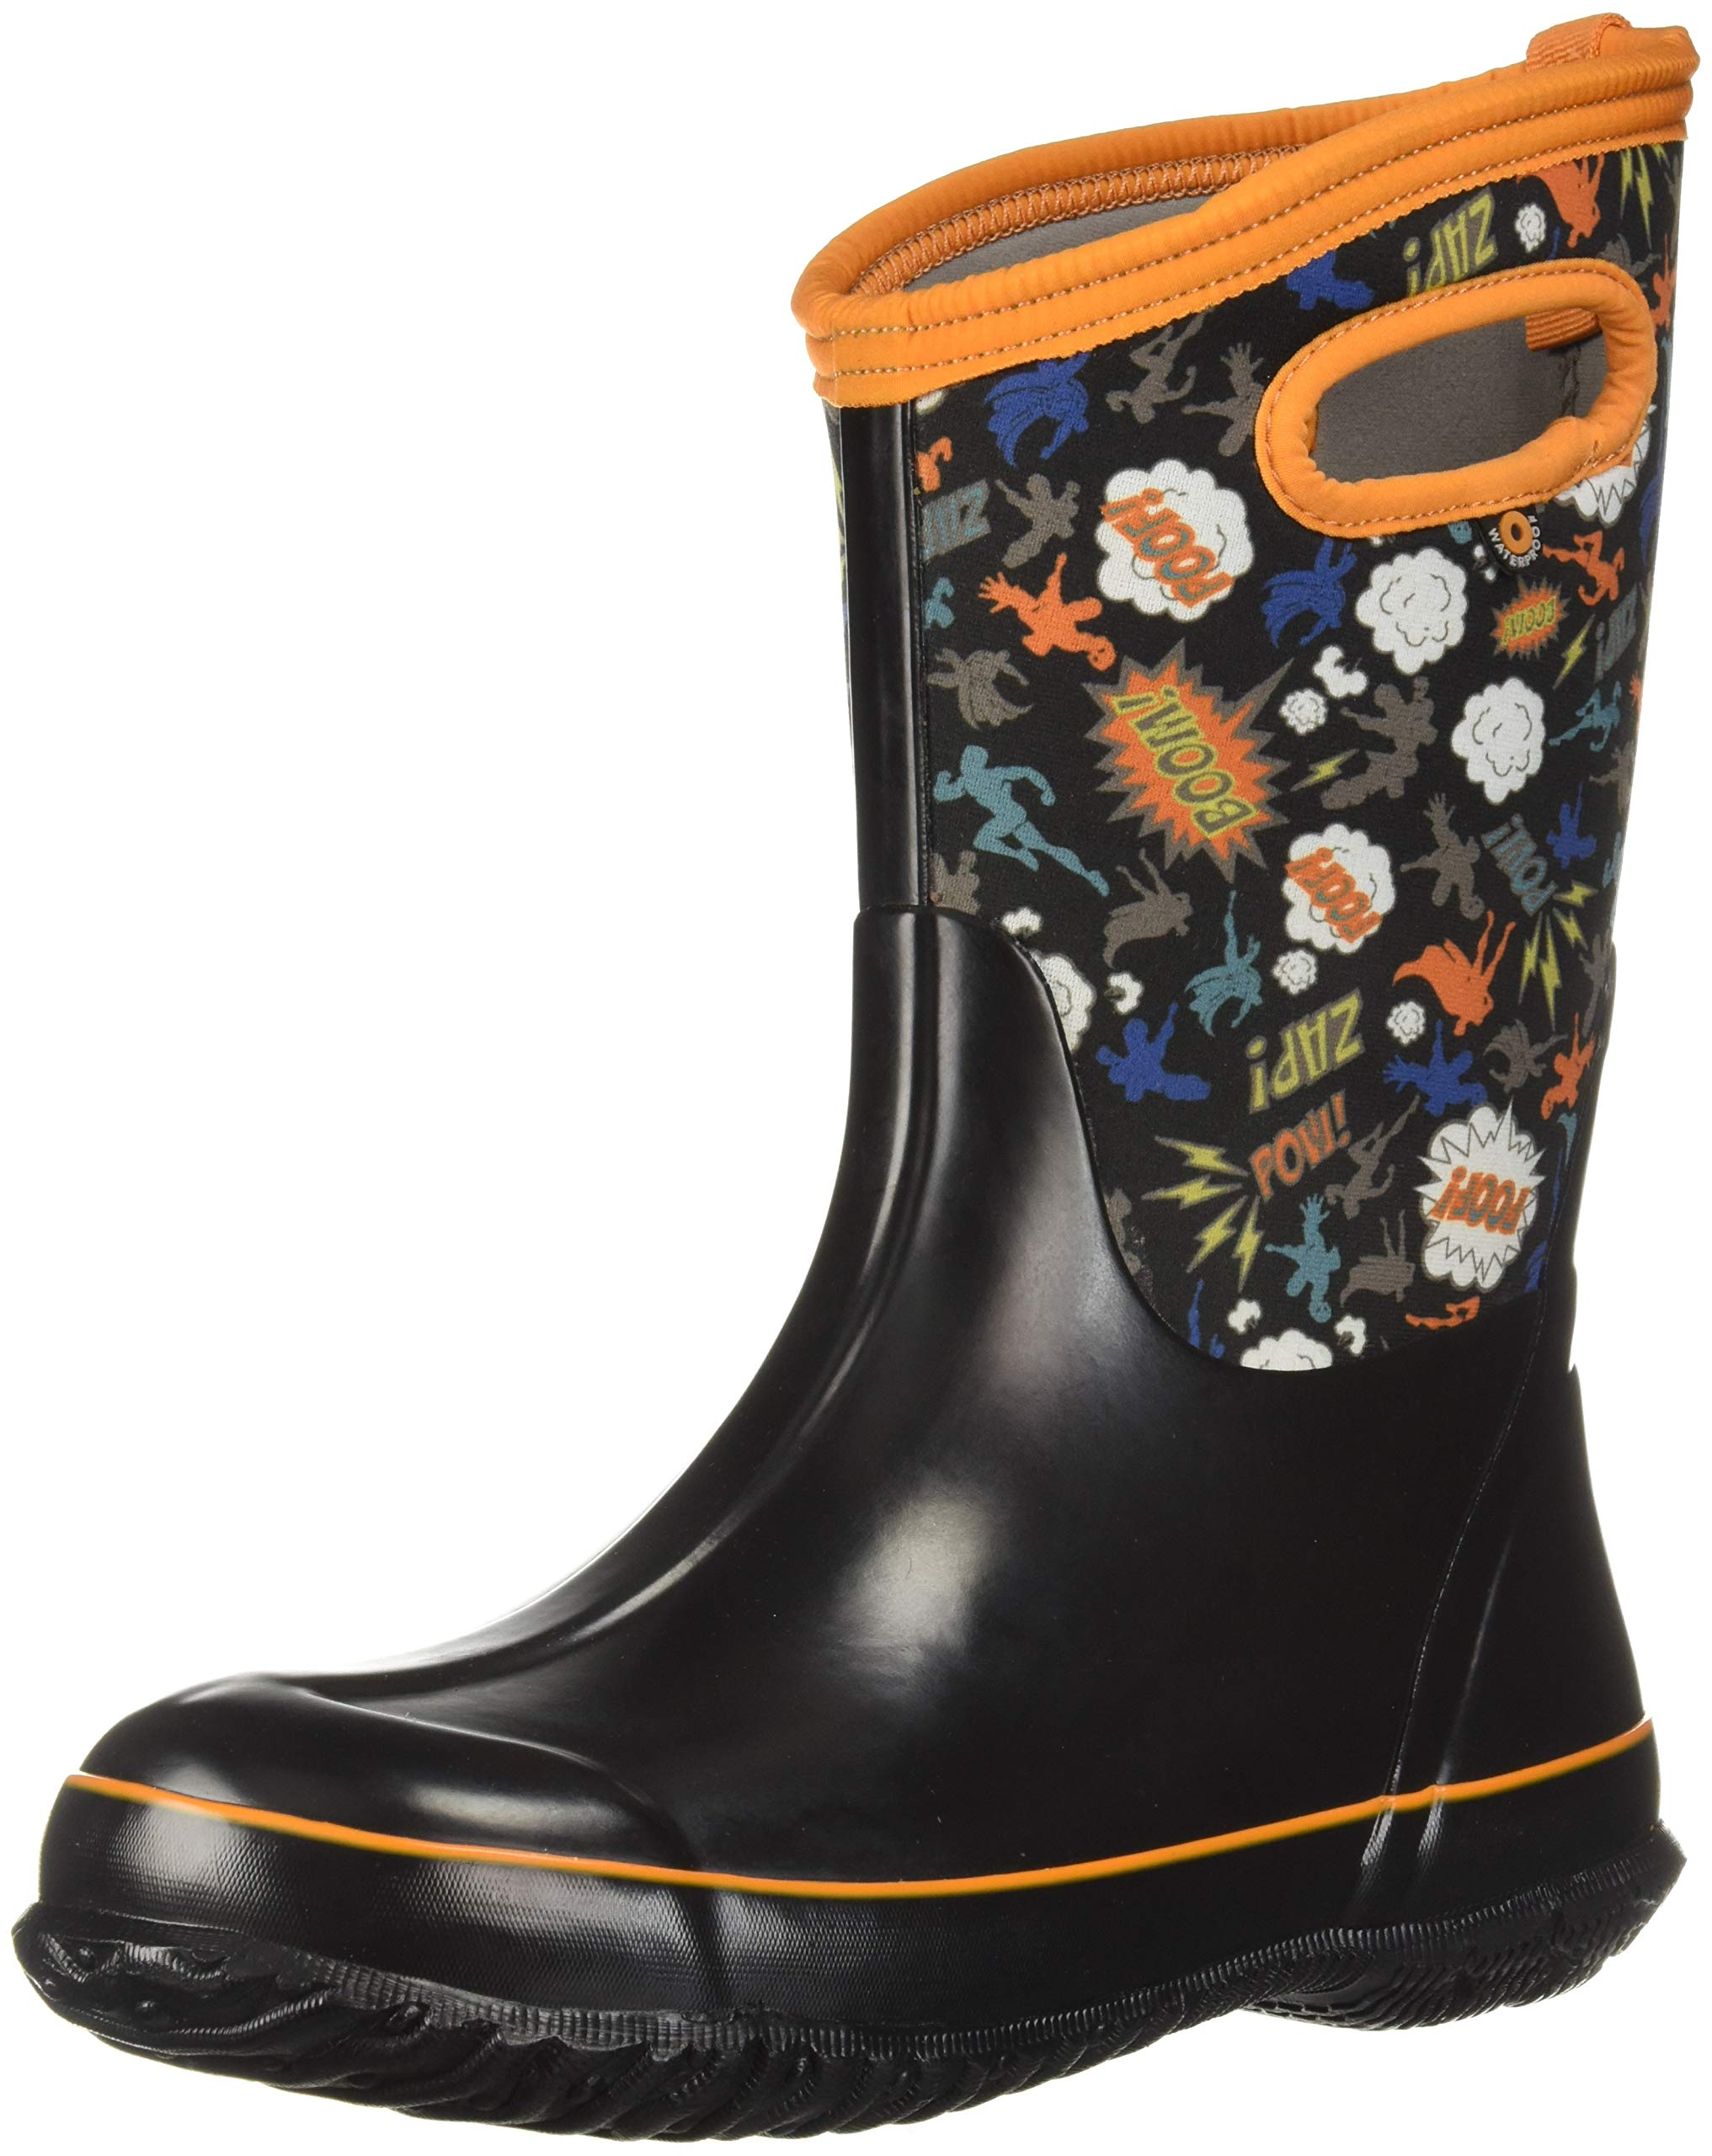 Best Rated in Girls' Snow Boots & Helpful Customer Reviews